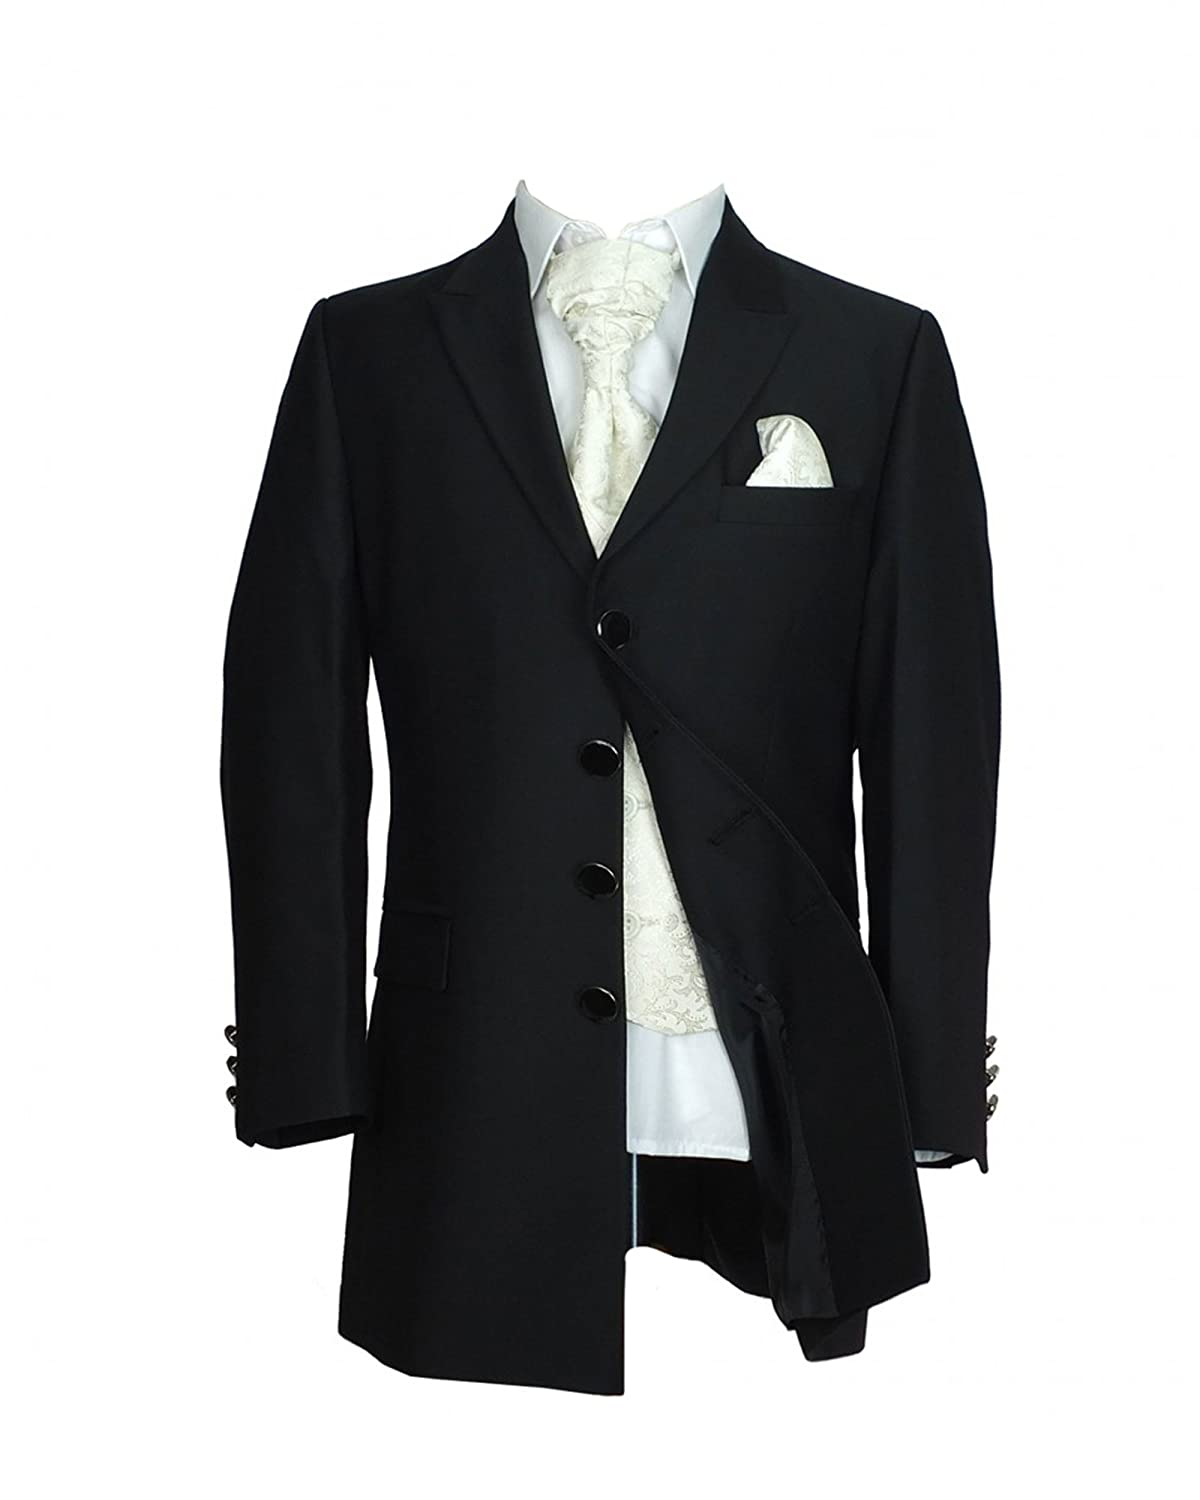 Boys 5 Piece Black Ivory Prince Edward Style Tail Suit by Sebastian Le Blanc